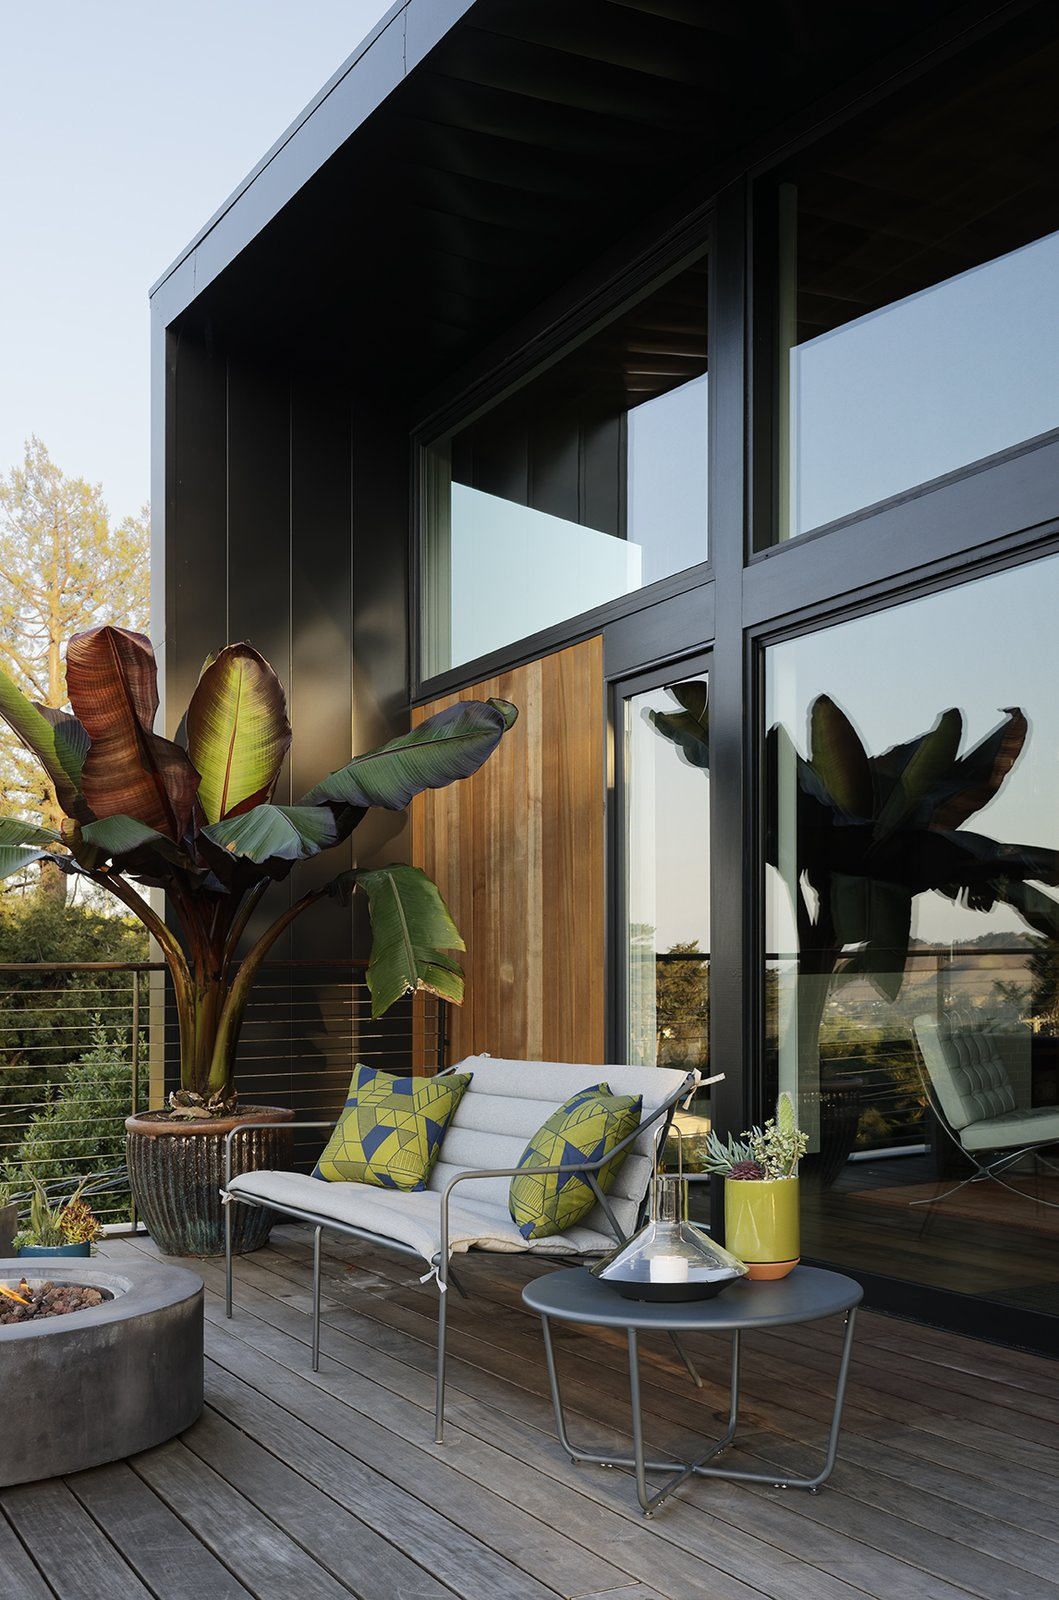 The barware, candle holders, dining set, lantern, terracotta planters, outdoor seating, and side table are all from the Modern by Dwell Magazine collection for Target. The fire pit is from Restoration Hardware.  Photo 1 of 1 in Show Us Your Modern by Dwell Magazine Decor